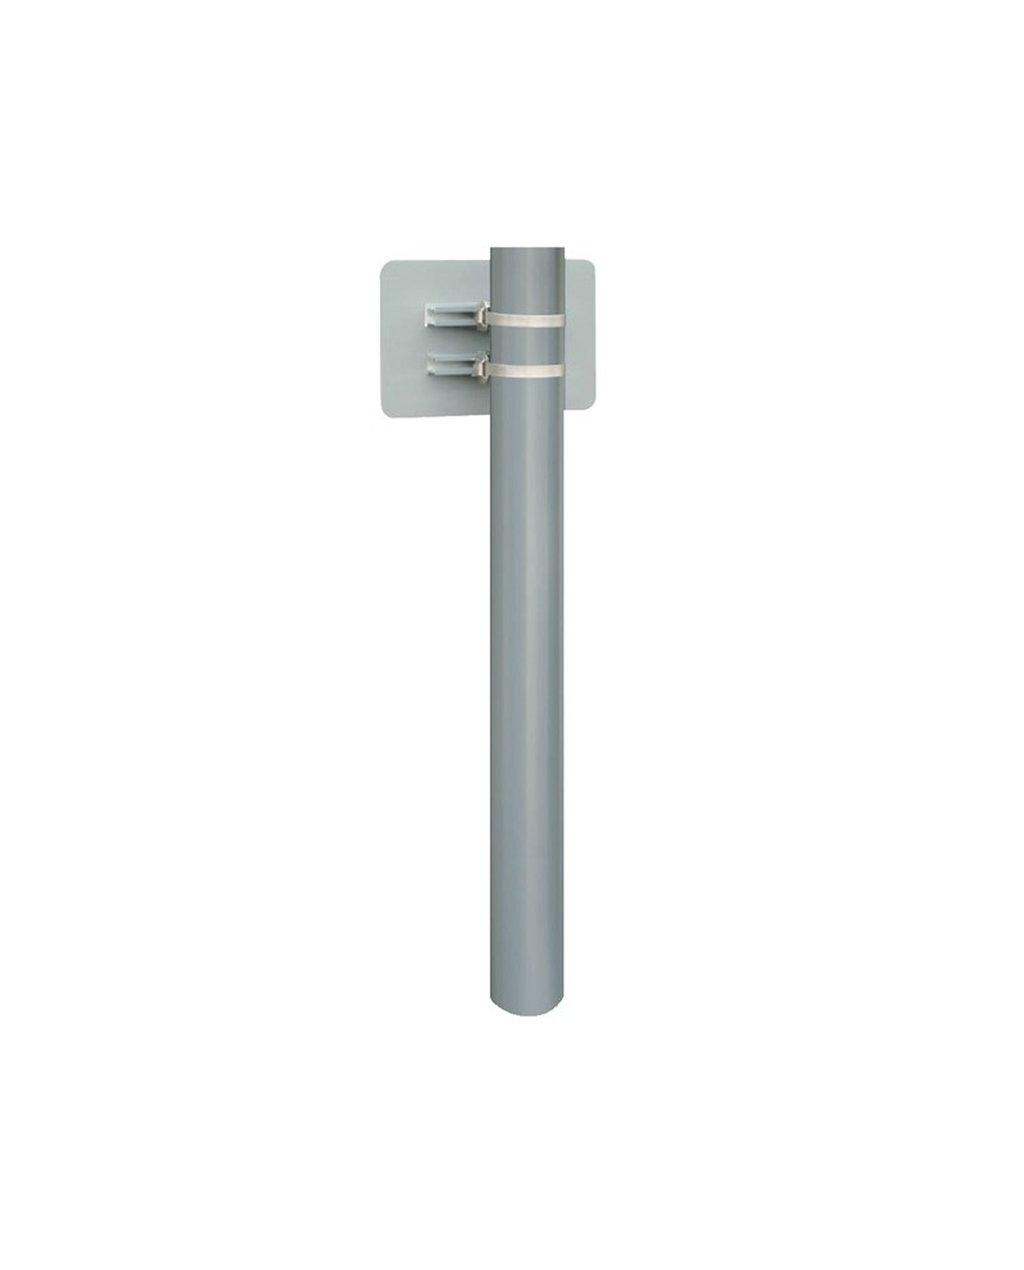 2m Aluminium post with Fixings